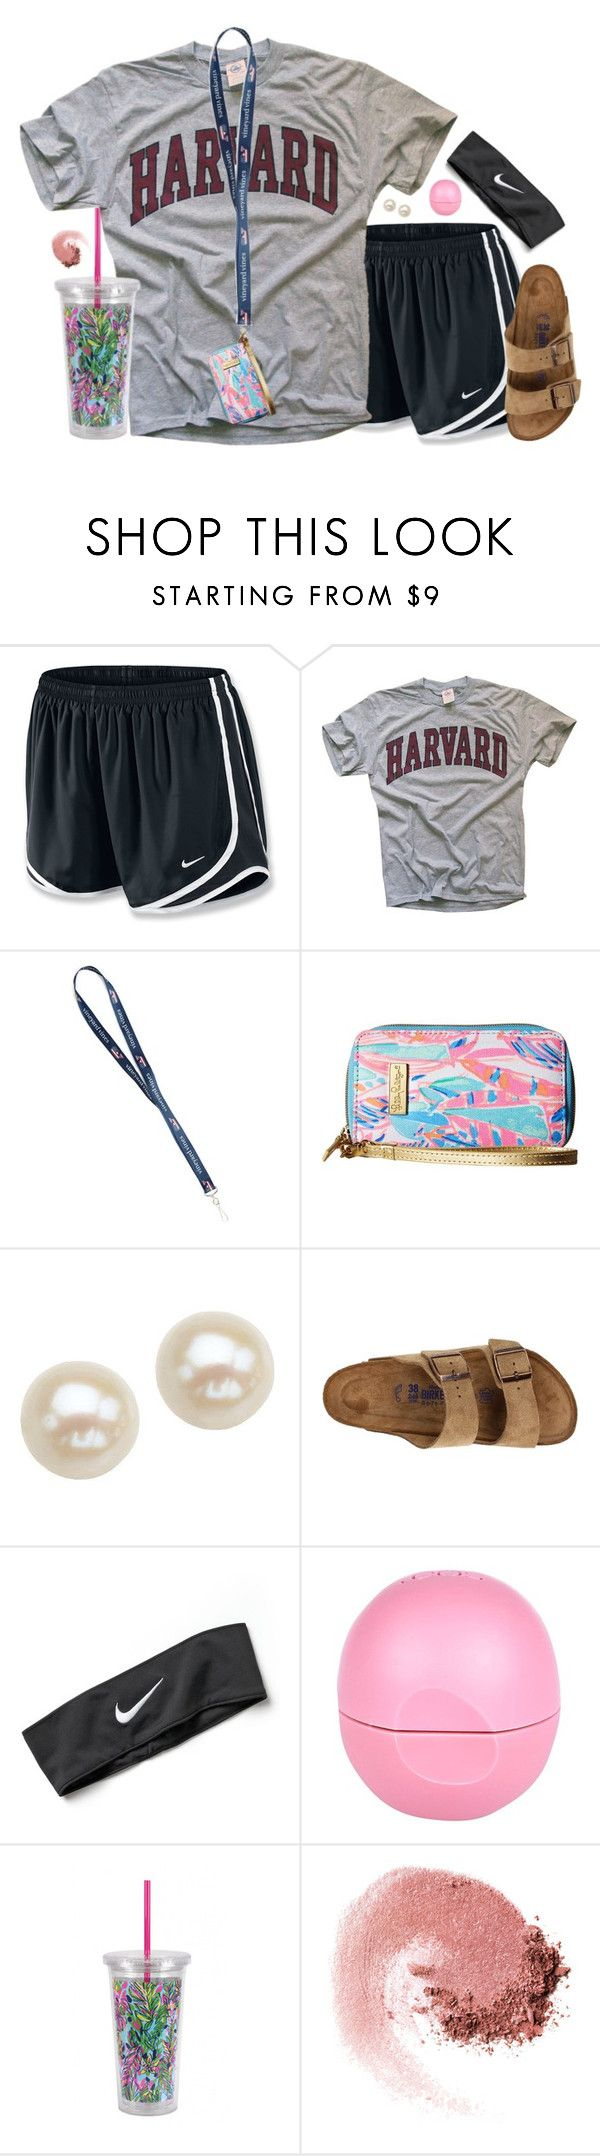 """Casual school outfit"" by aweaver-2 on Polyvore featuring NIKE, Lilly Pulitzer, Honora, Birkenstock, River Island and NARS Cosmetics"